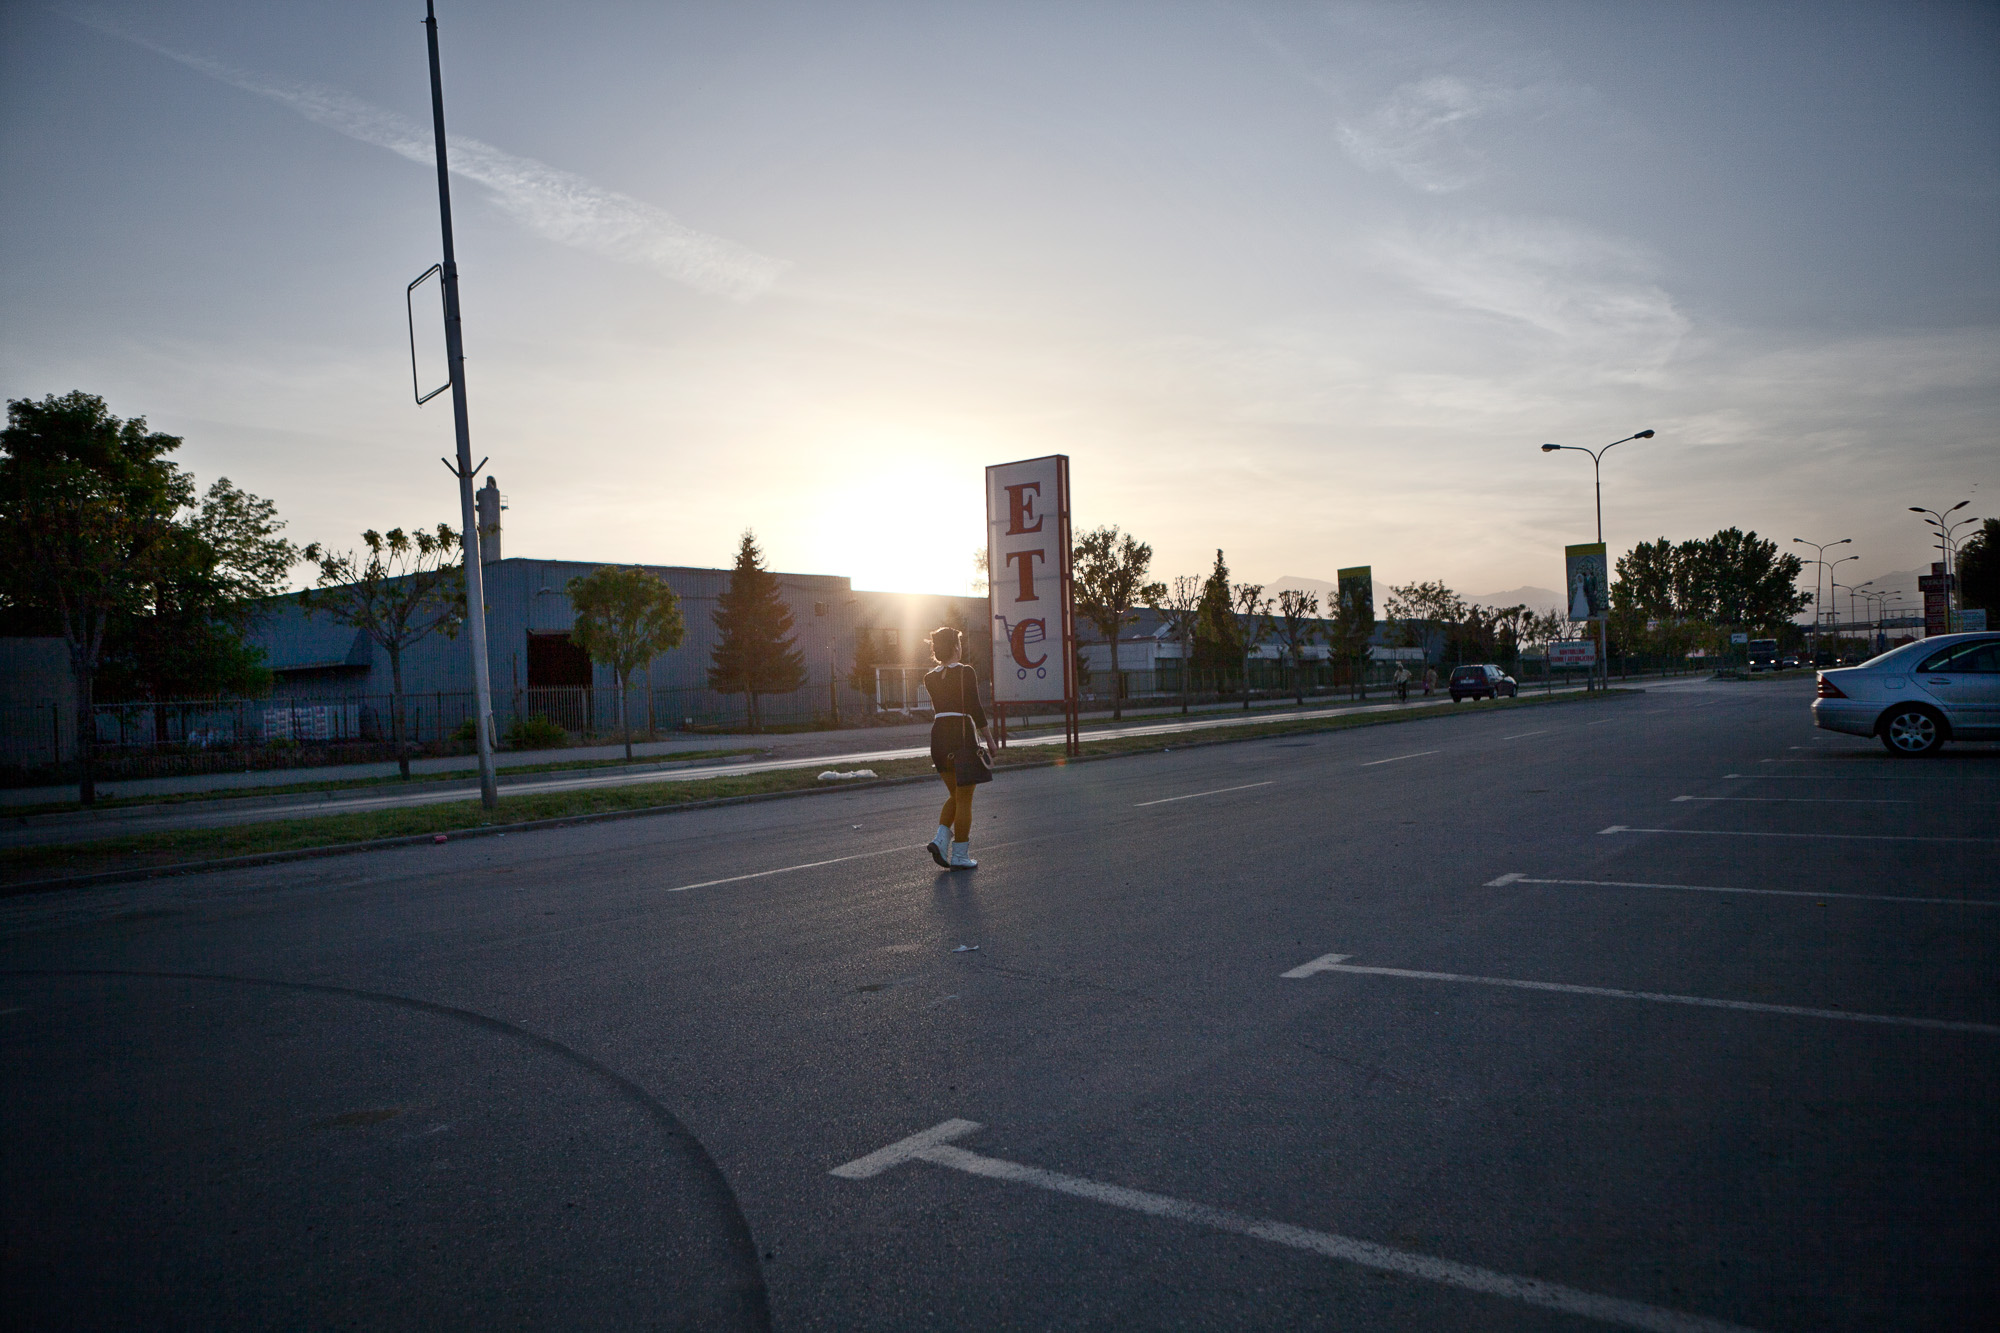 At twilight, a young woman walks down an empty street in the old industrial area of Gjakova, now lined with empty buildings.  She, like many of her age group, see the opportunities offered abroad but is unable to seize them due to the lack of visa liberalization. Although part of Europe, Kosovo remains one of the most isolated countries on earth due to its limited international sovereignty and its passports not being recognized universally.   This requires citizens to obtain a travel visa, even within neighboring states.   This adds another hurdle for the opportunities of youth.